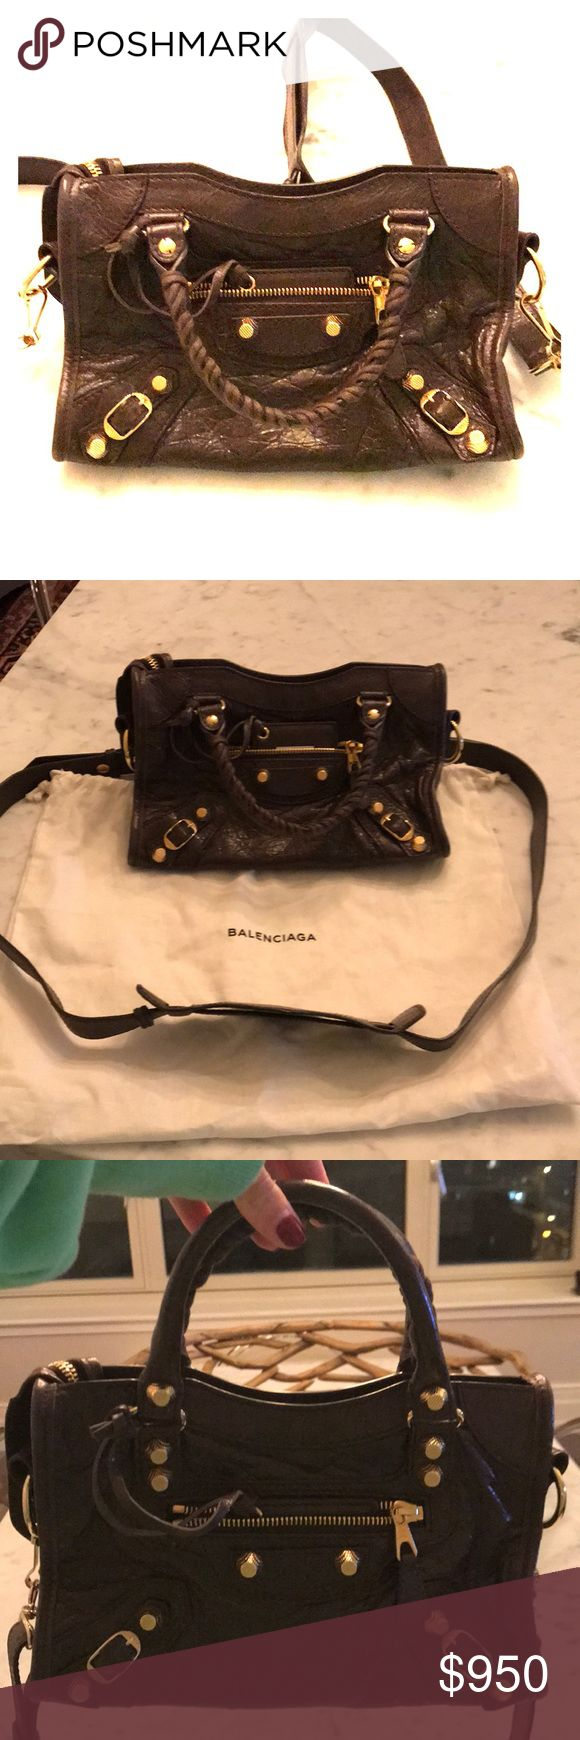 "CLASSIC GOLD NANO CITY BALENCIAGA Lambskin mini bag with ""classic"" shiny hardware:    Product details: Removable and adjustable shoulder strap • Top zip closure • Shiny gold metal hardware • Leather zipper pull • Front zip pocket • Interior zip pocket with Balenciaga embossed leather label • Leather framed mirror • Made in Italy   Dimensions: W 6.6 inches H 4.7 inches D 2.0 inches Composition:  Soft crafted vintage lambskin Lining: Black cotton canvas Balenciaga Bags Crossbody Bags"